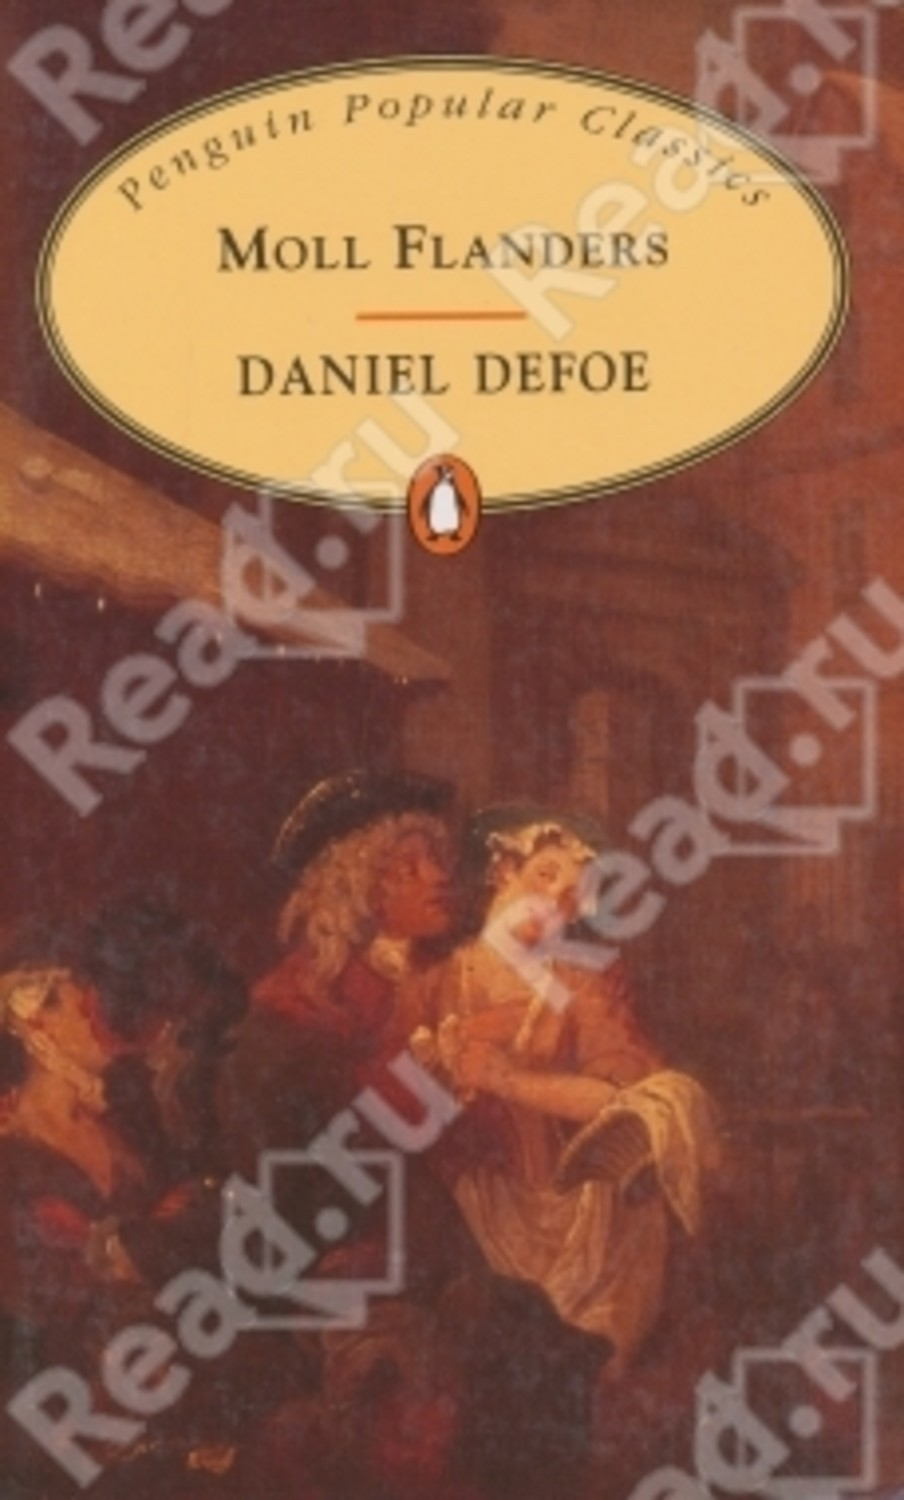 realism and credibility in daniel defoes moll flanders and aphra behns oroonoko A journal of the plague year [daniel defoe] it provides tables of casualty figures and discusses the credibility of various accounts and moll flanders daniel.